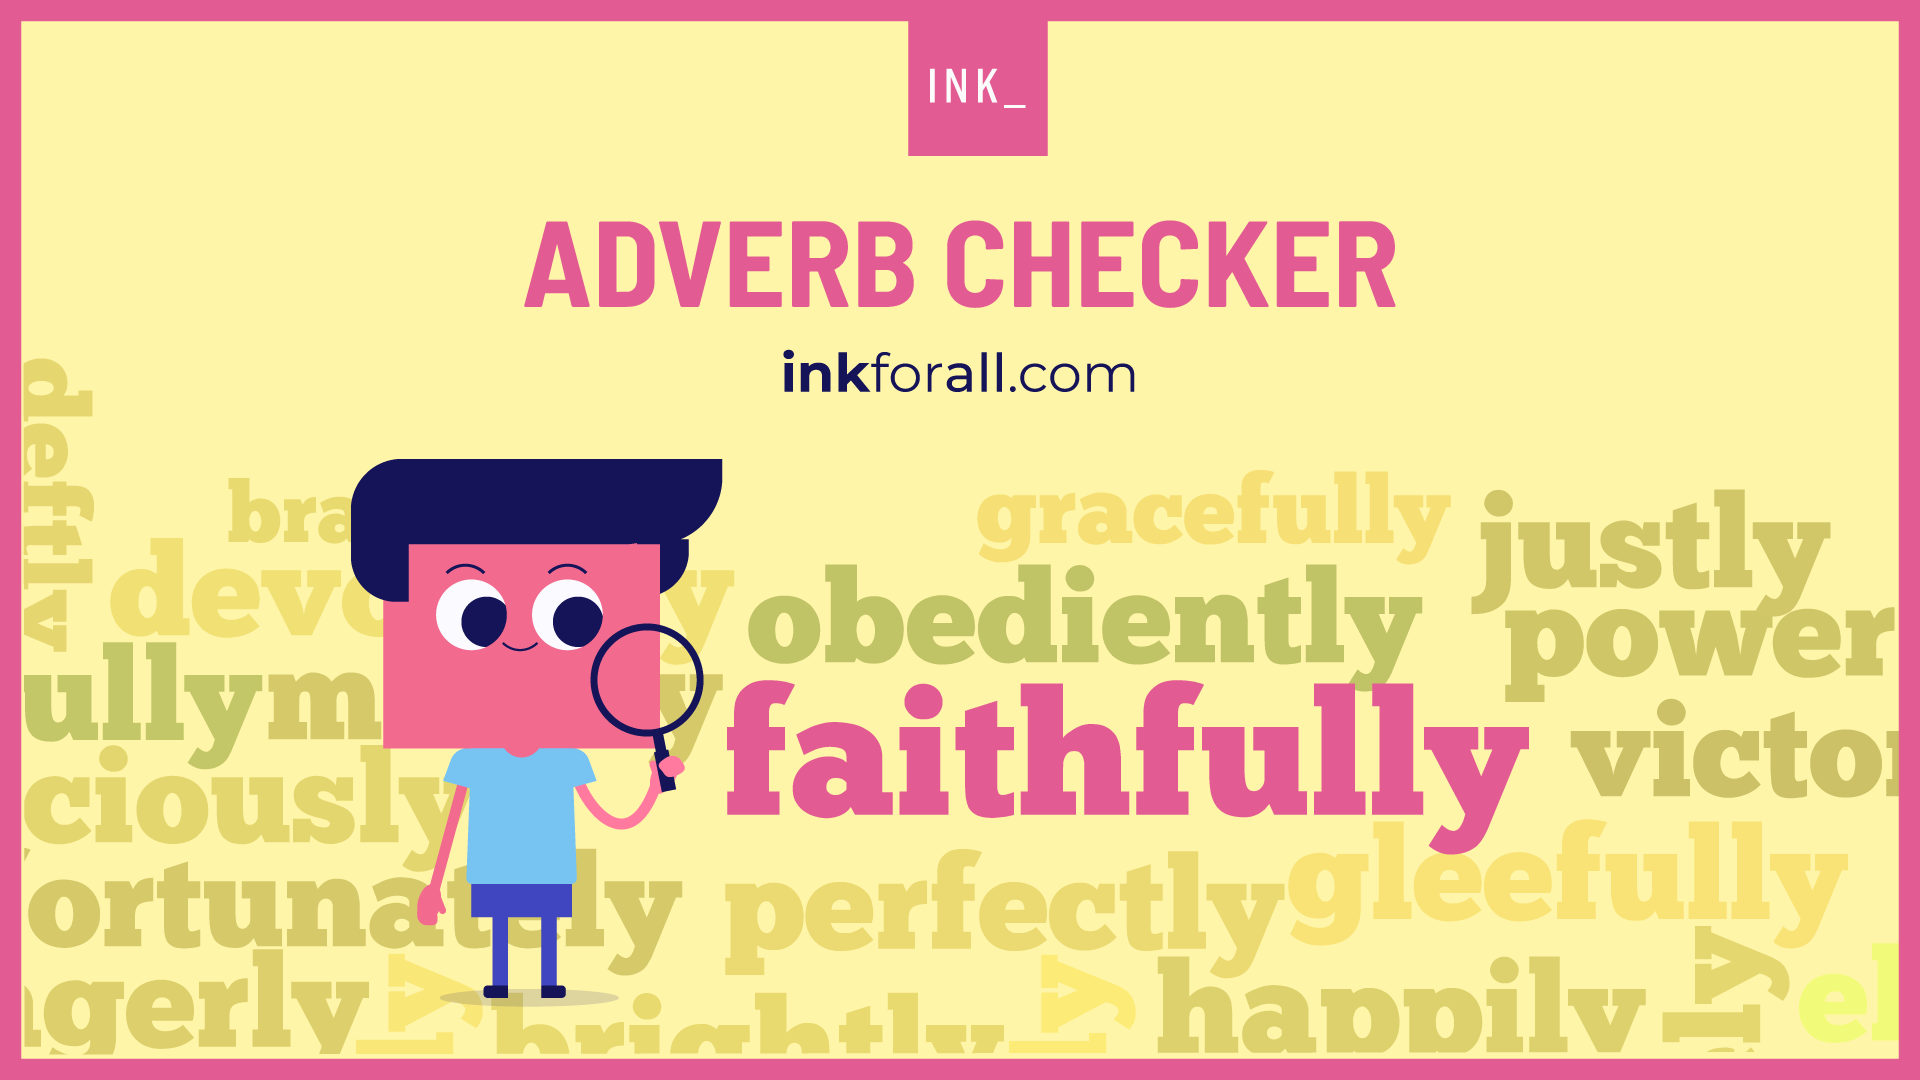 Adverb checker